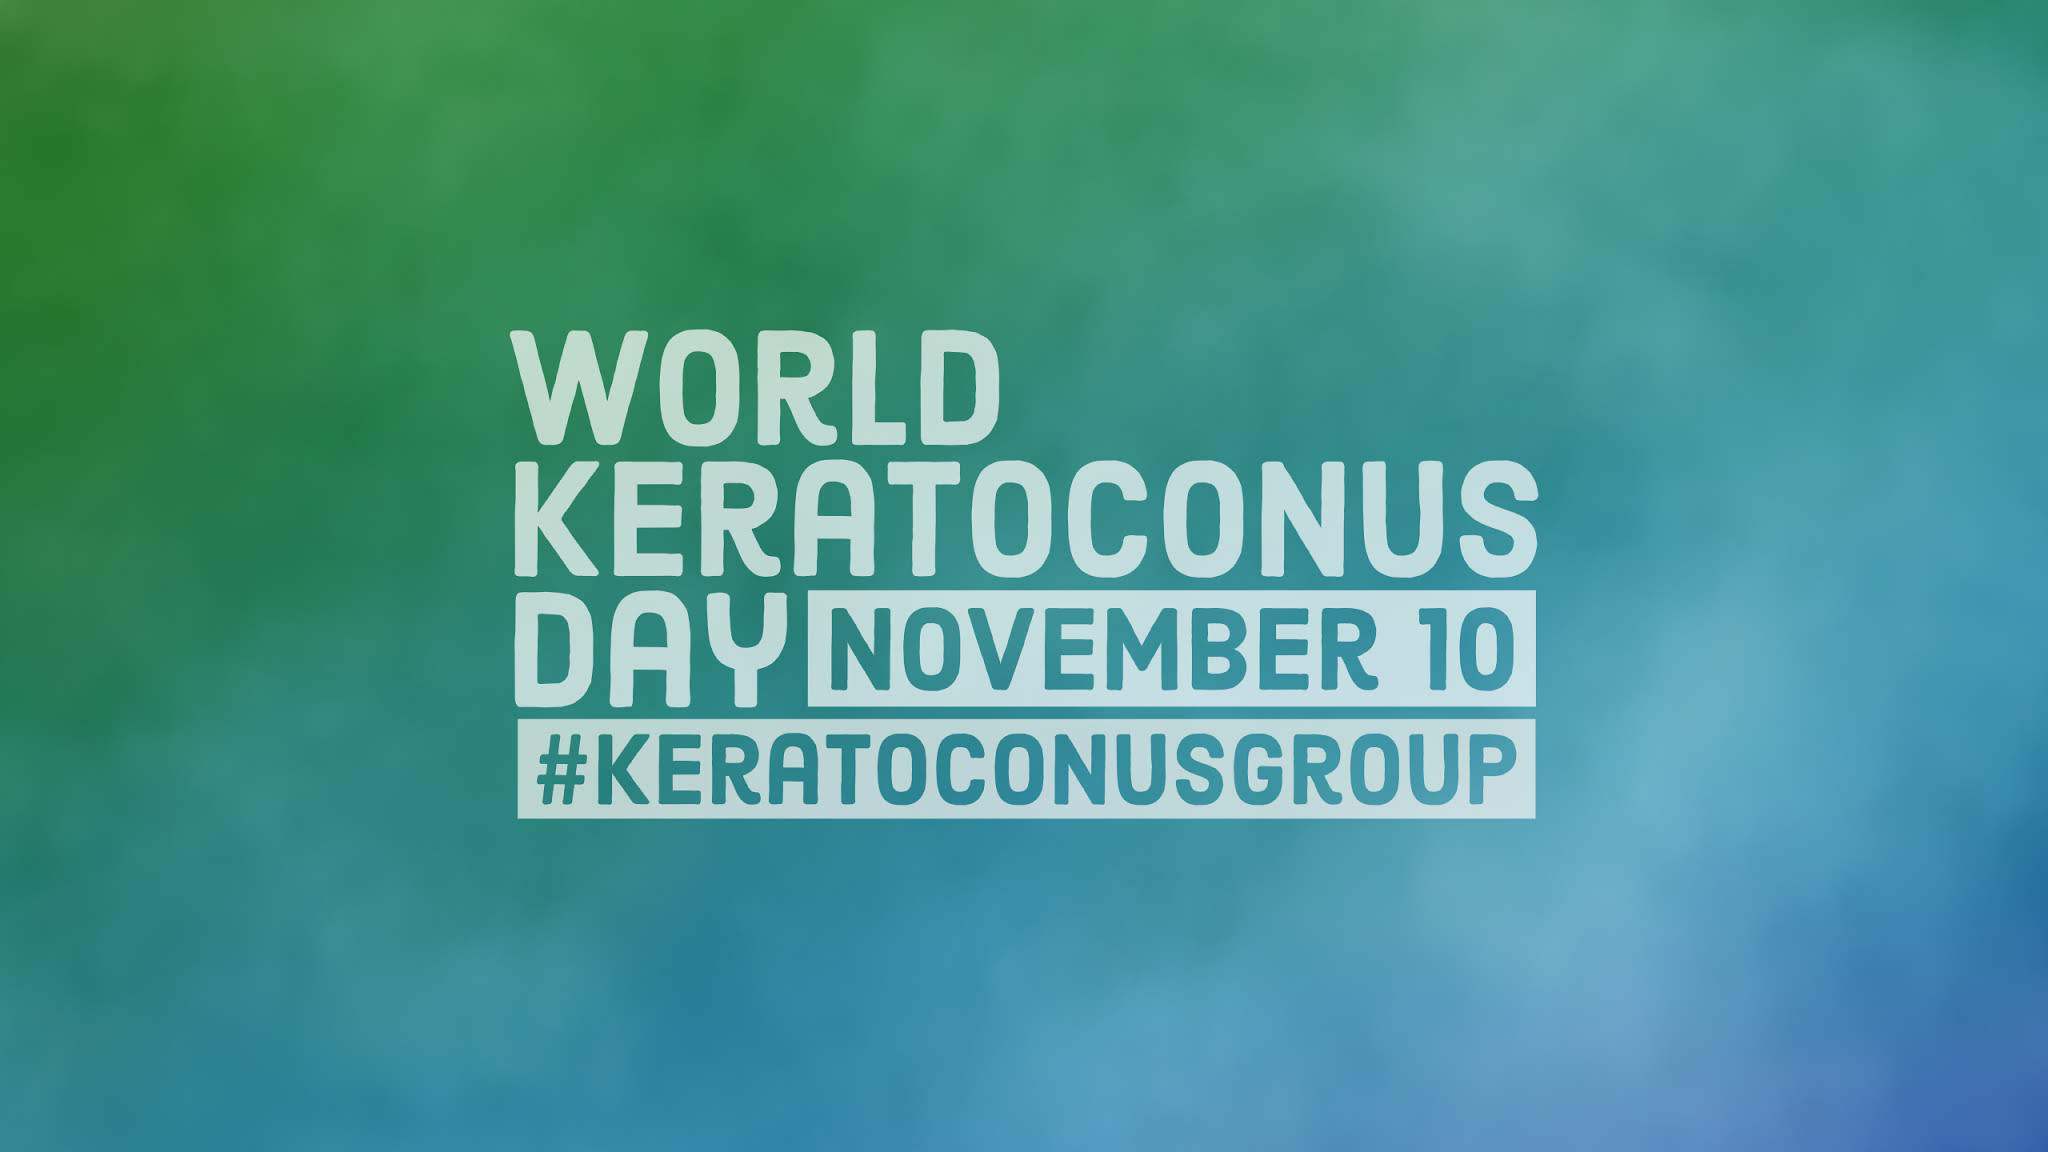 World Keratoconus Day 2019 Desktop or Tablet Wallpaper